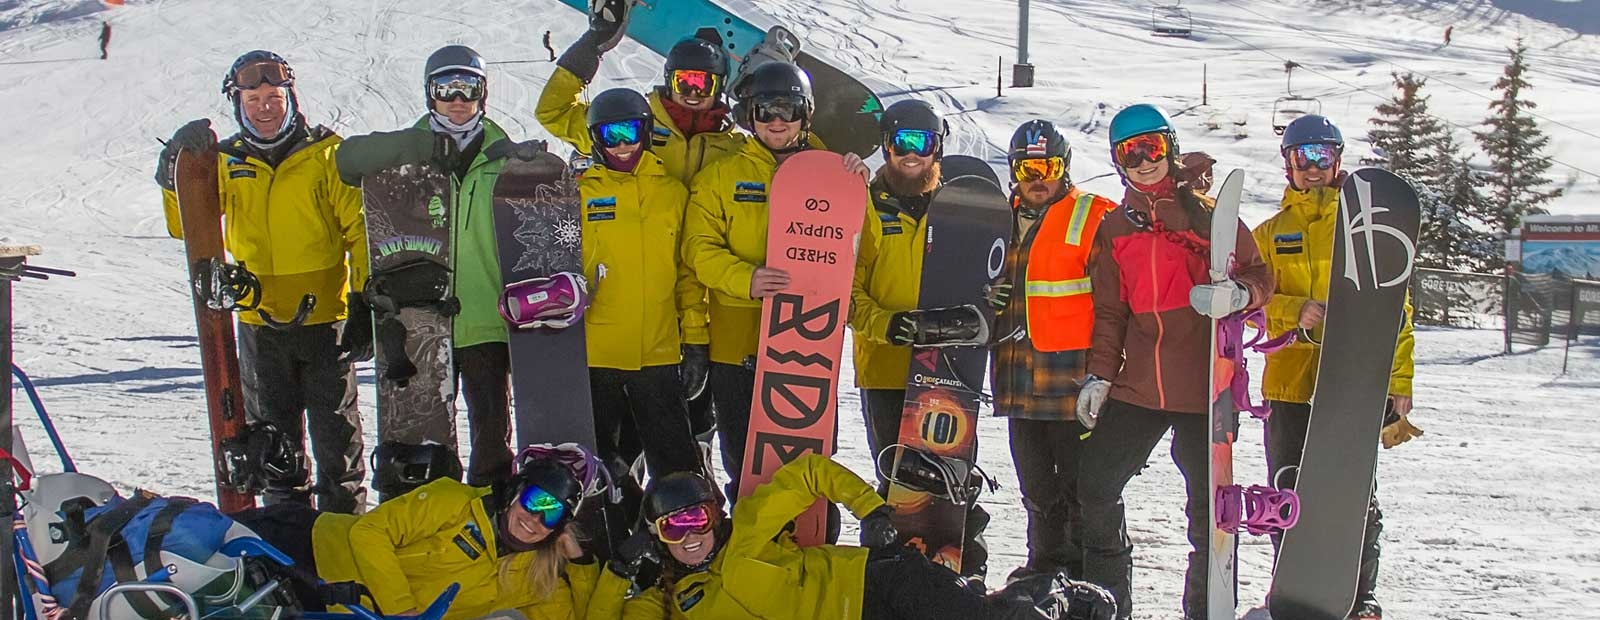 Group of snowboarders on top of a mountain